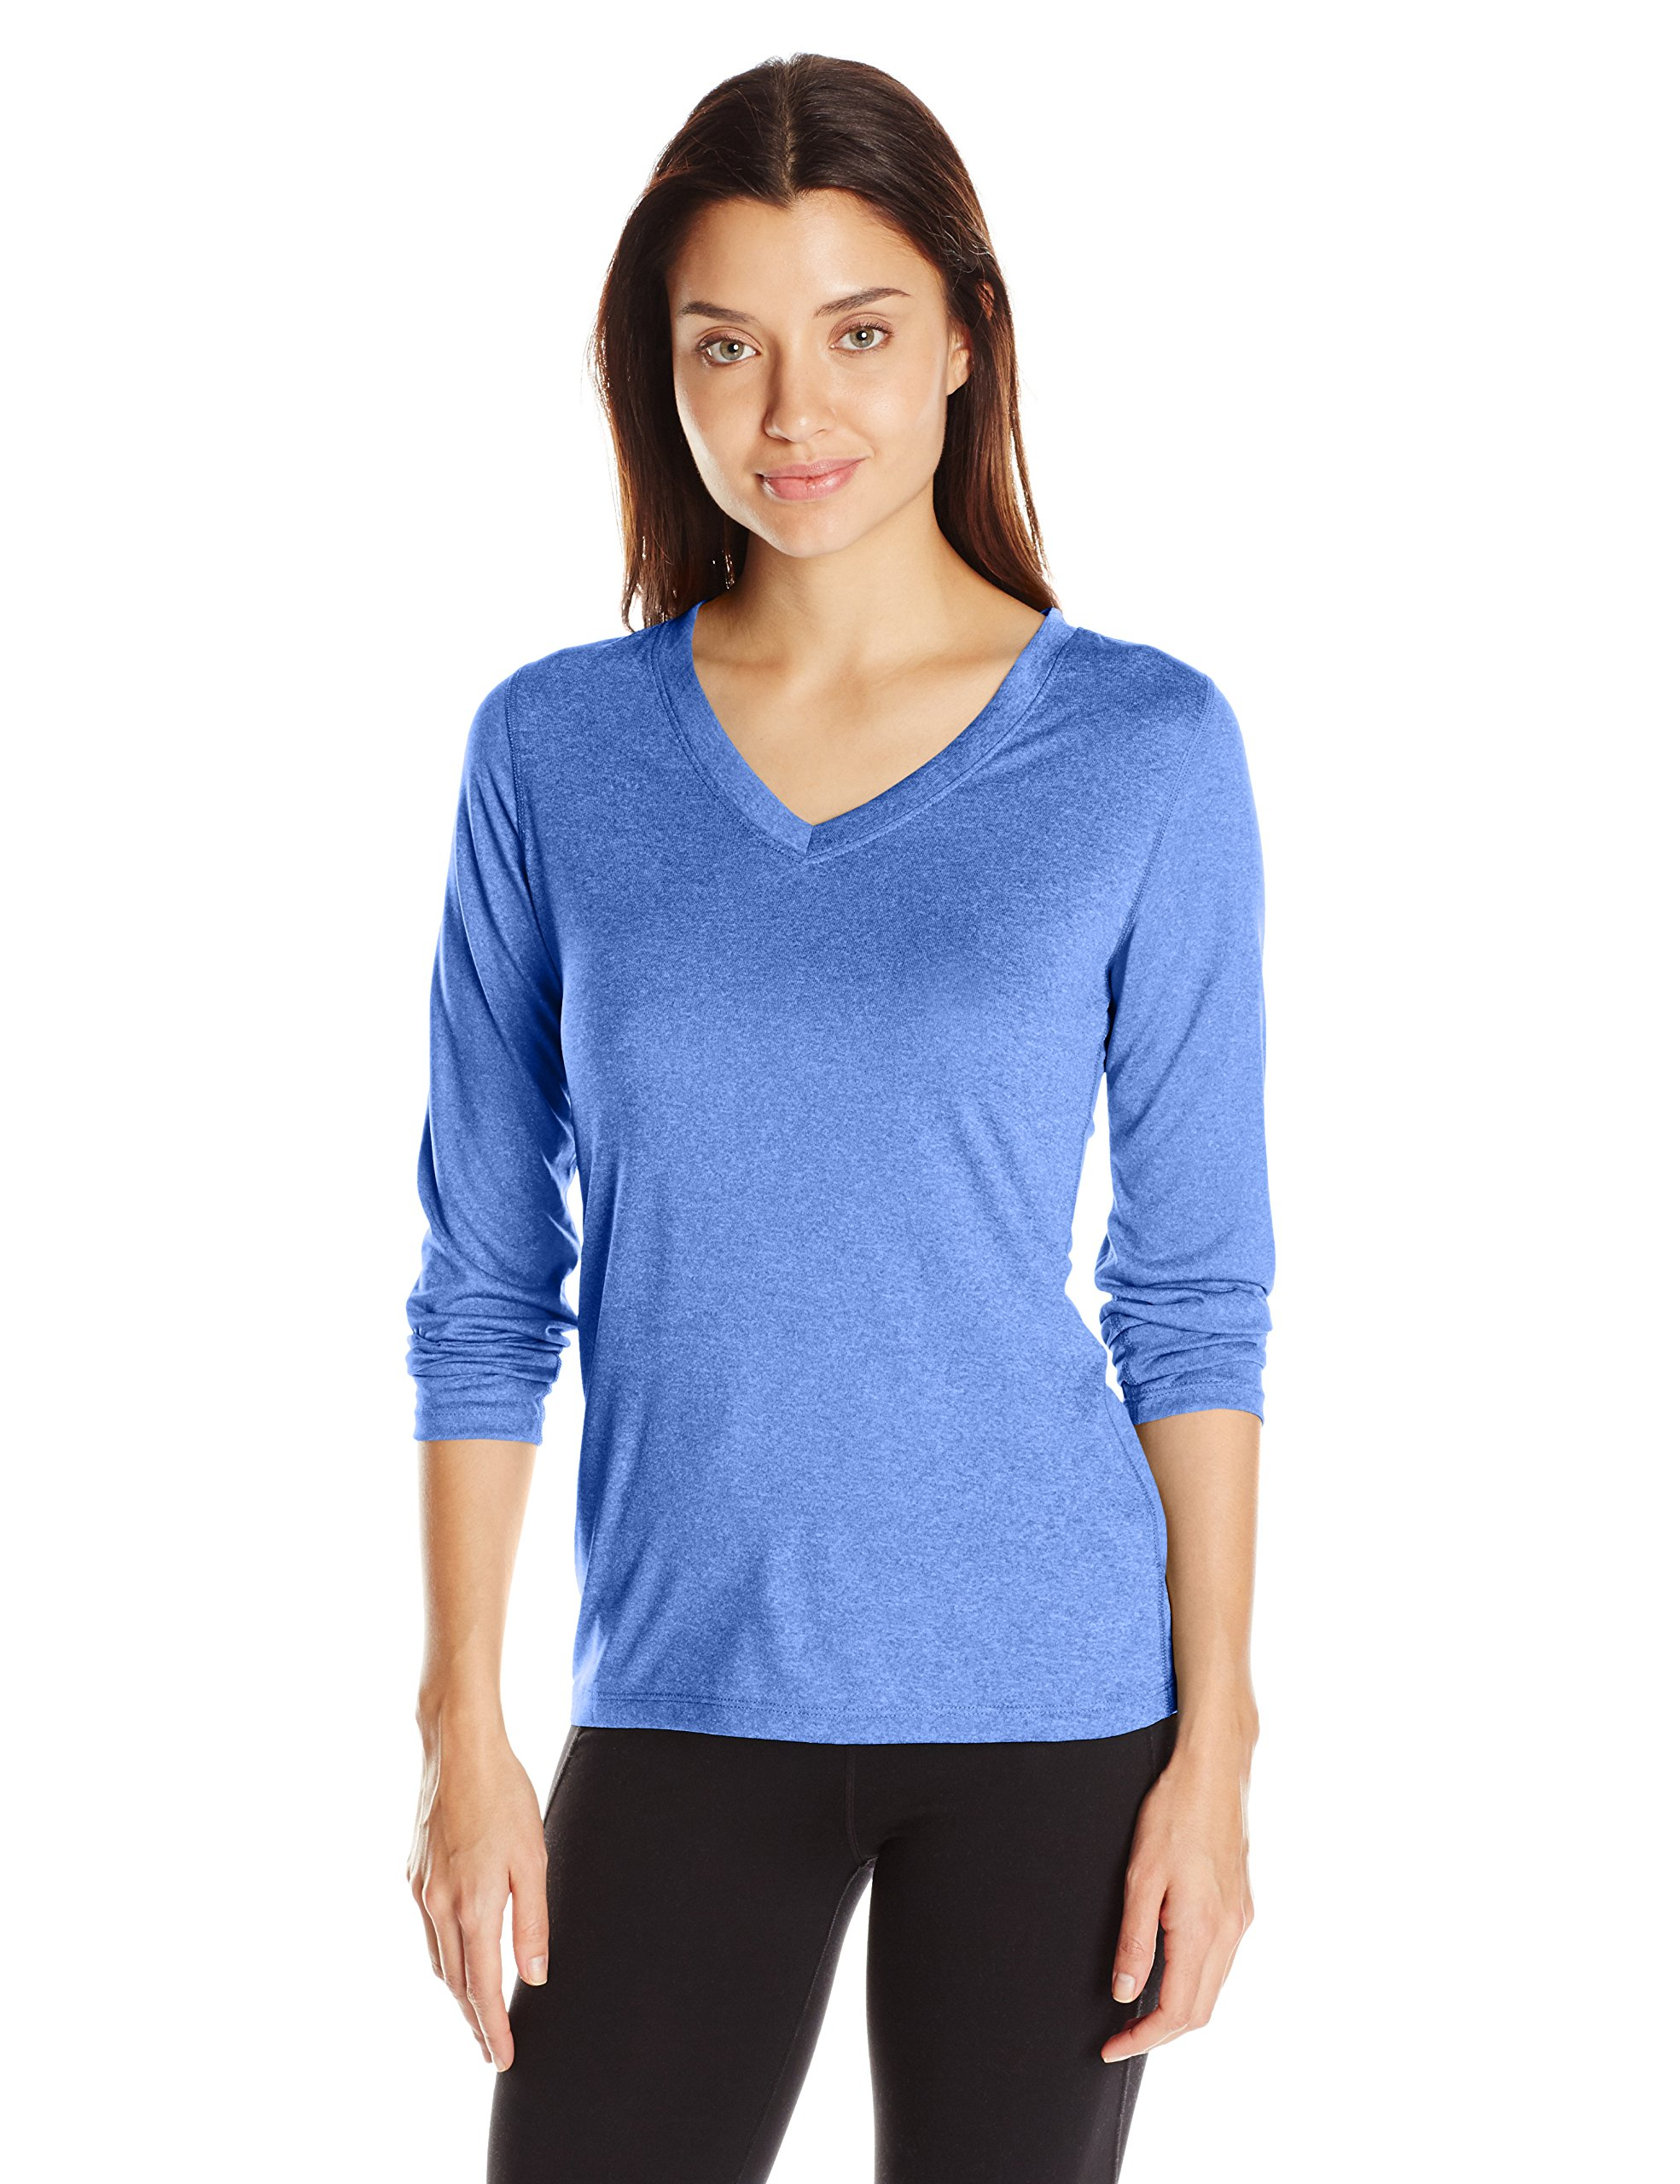 Hanes Women's Sport Cool Dri Performance Long Sleeve V-Neck Tee, Awesome Blue Heather, 2X Large